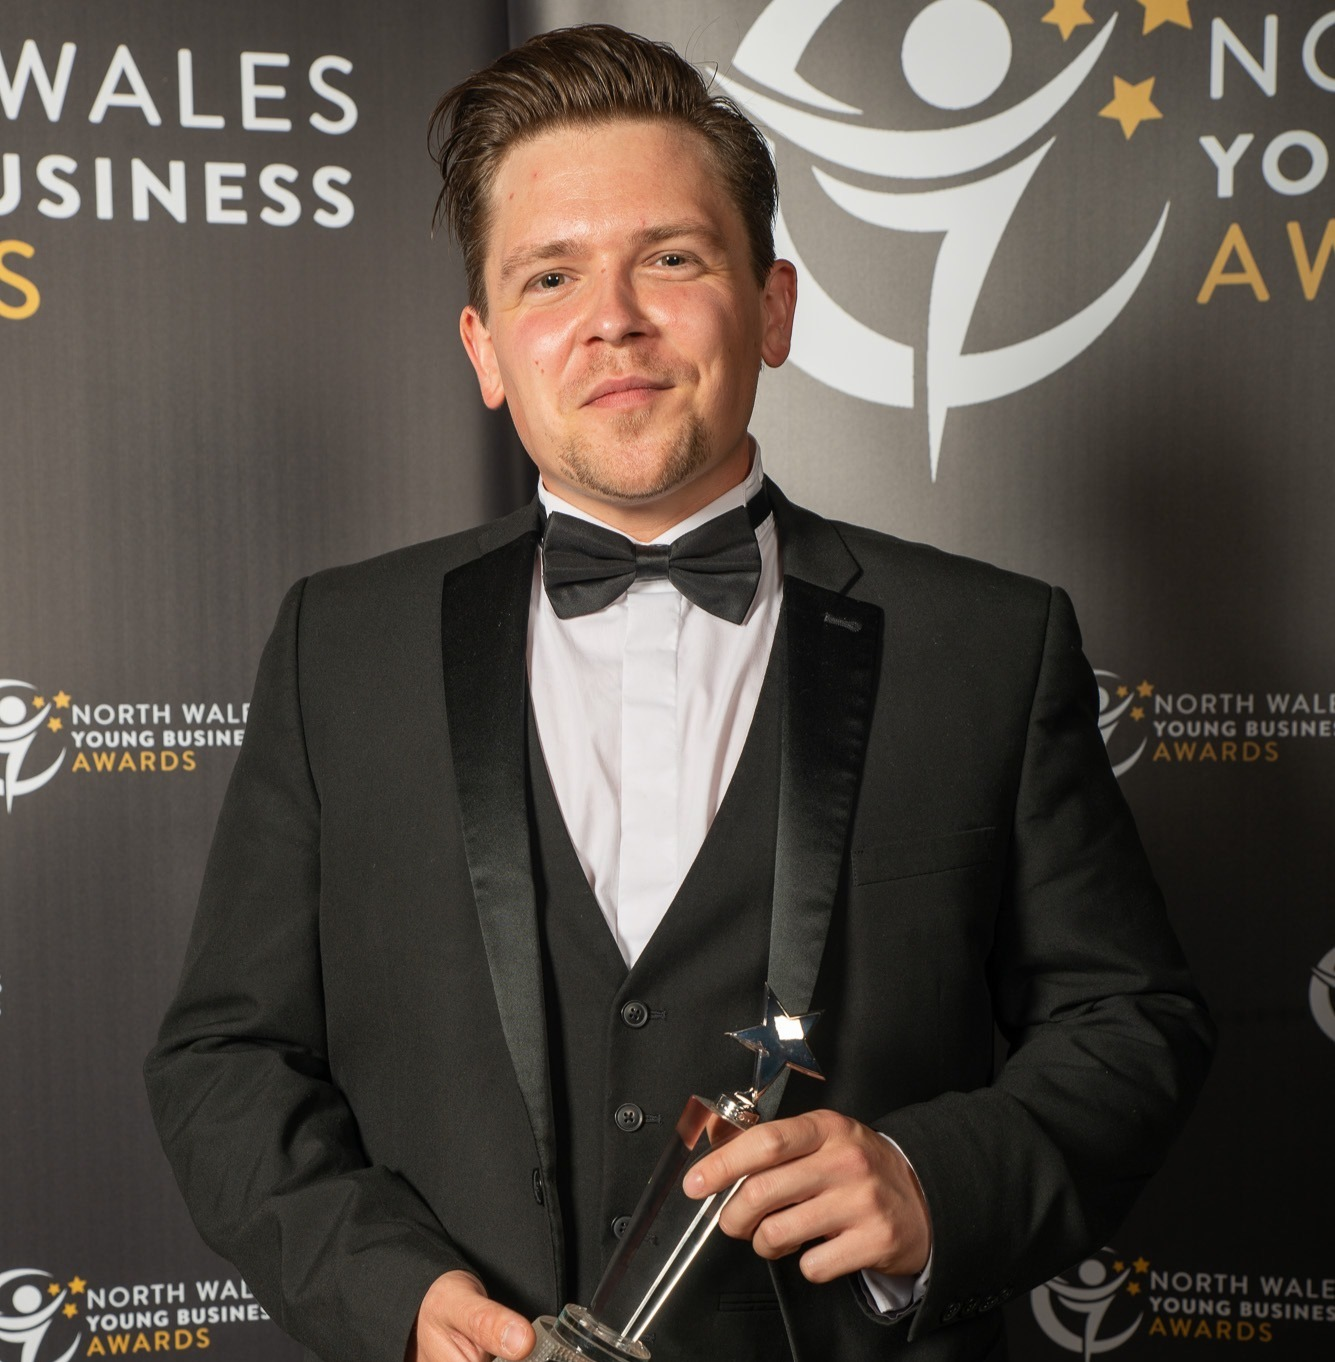 North%20Wales%20Business%20Awards%20-%20